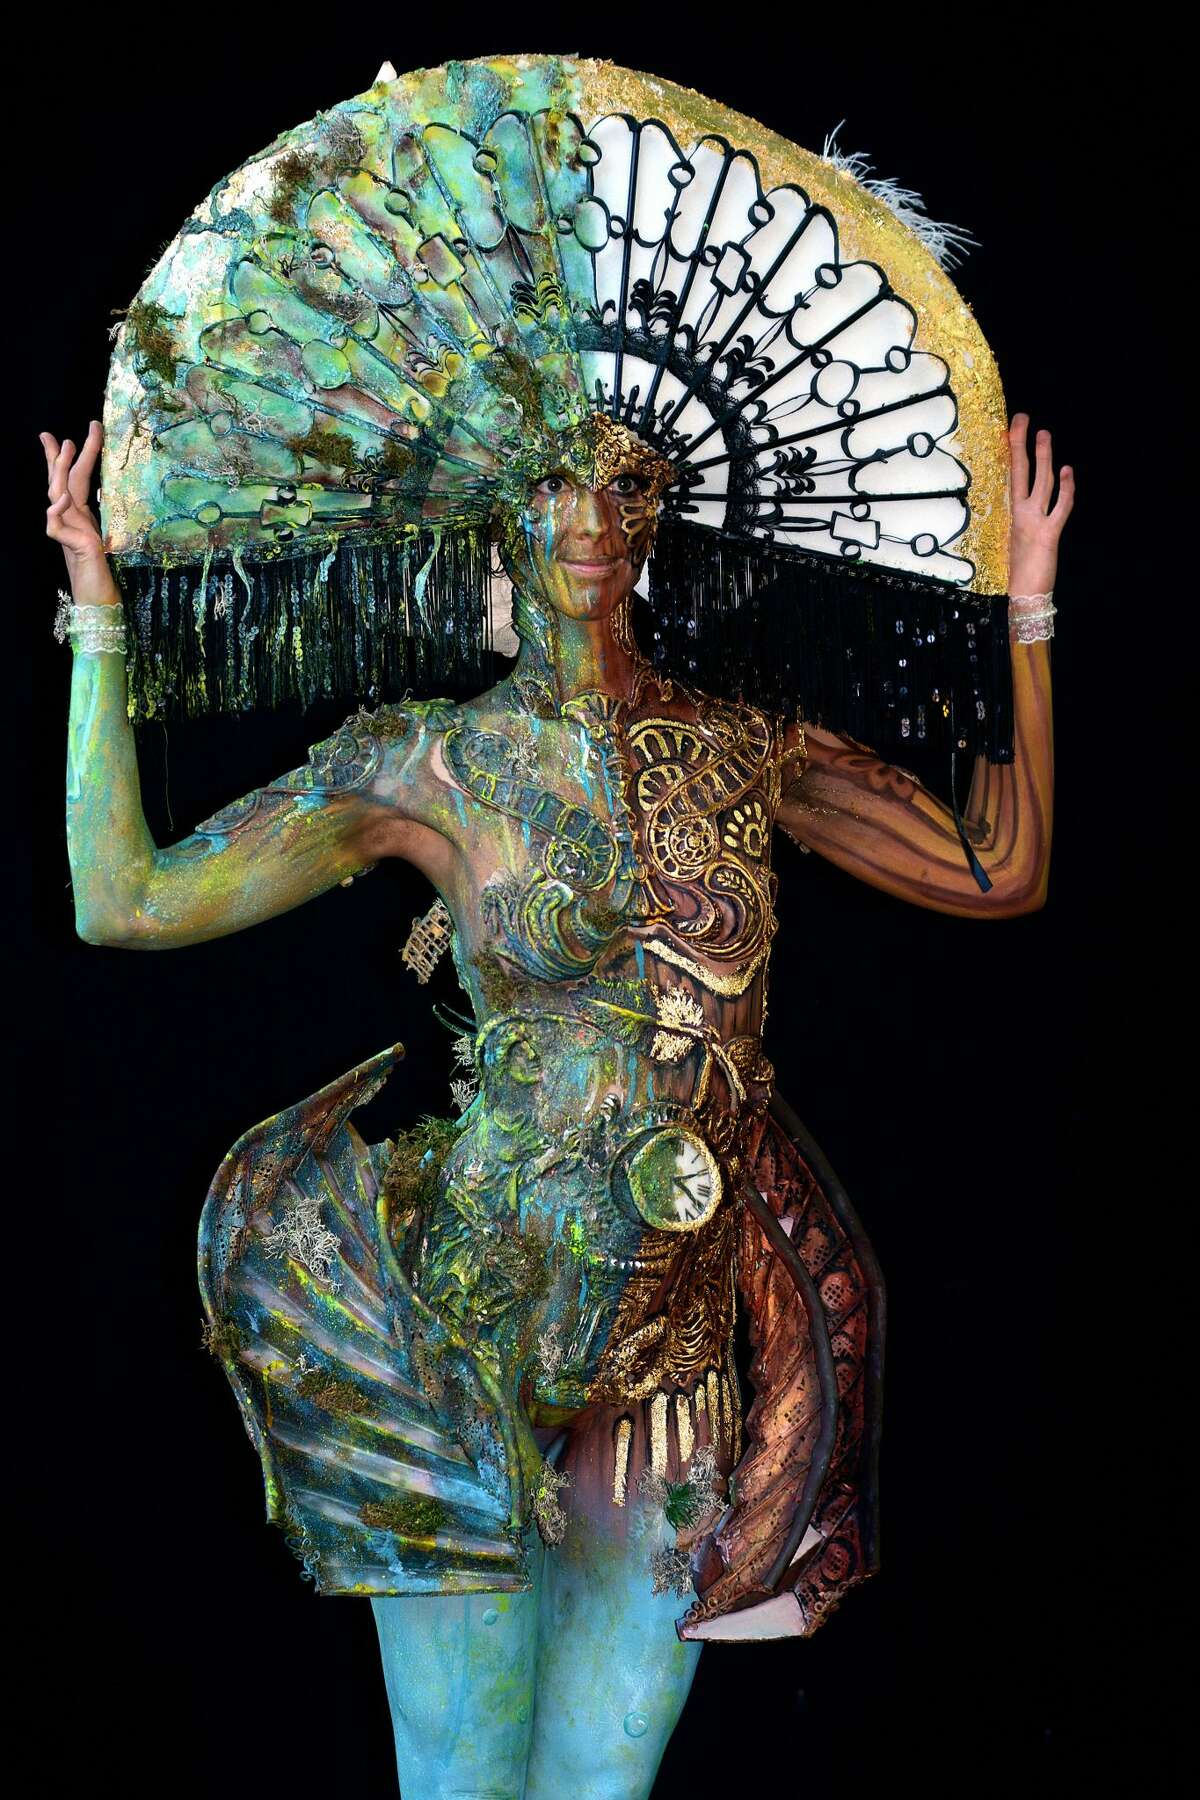 KLAGENFURT, AUSTRIA - JULY 13: A model, painted by bodypainting artists Yvonne Zonnenberg-Hughes and Astric Hughes from South Africa,poses for a picture at the 21st World Bodypainting Festival 2018 on July 13, 2018 in Klagenfurt, Austria. (Photo by Didier Messens/Getty Images)